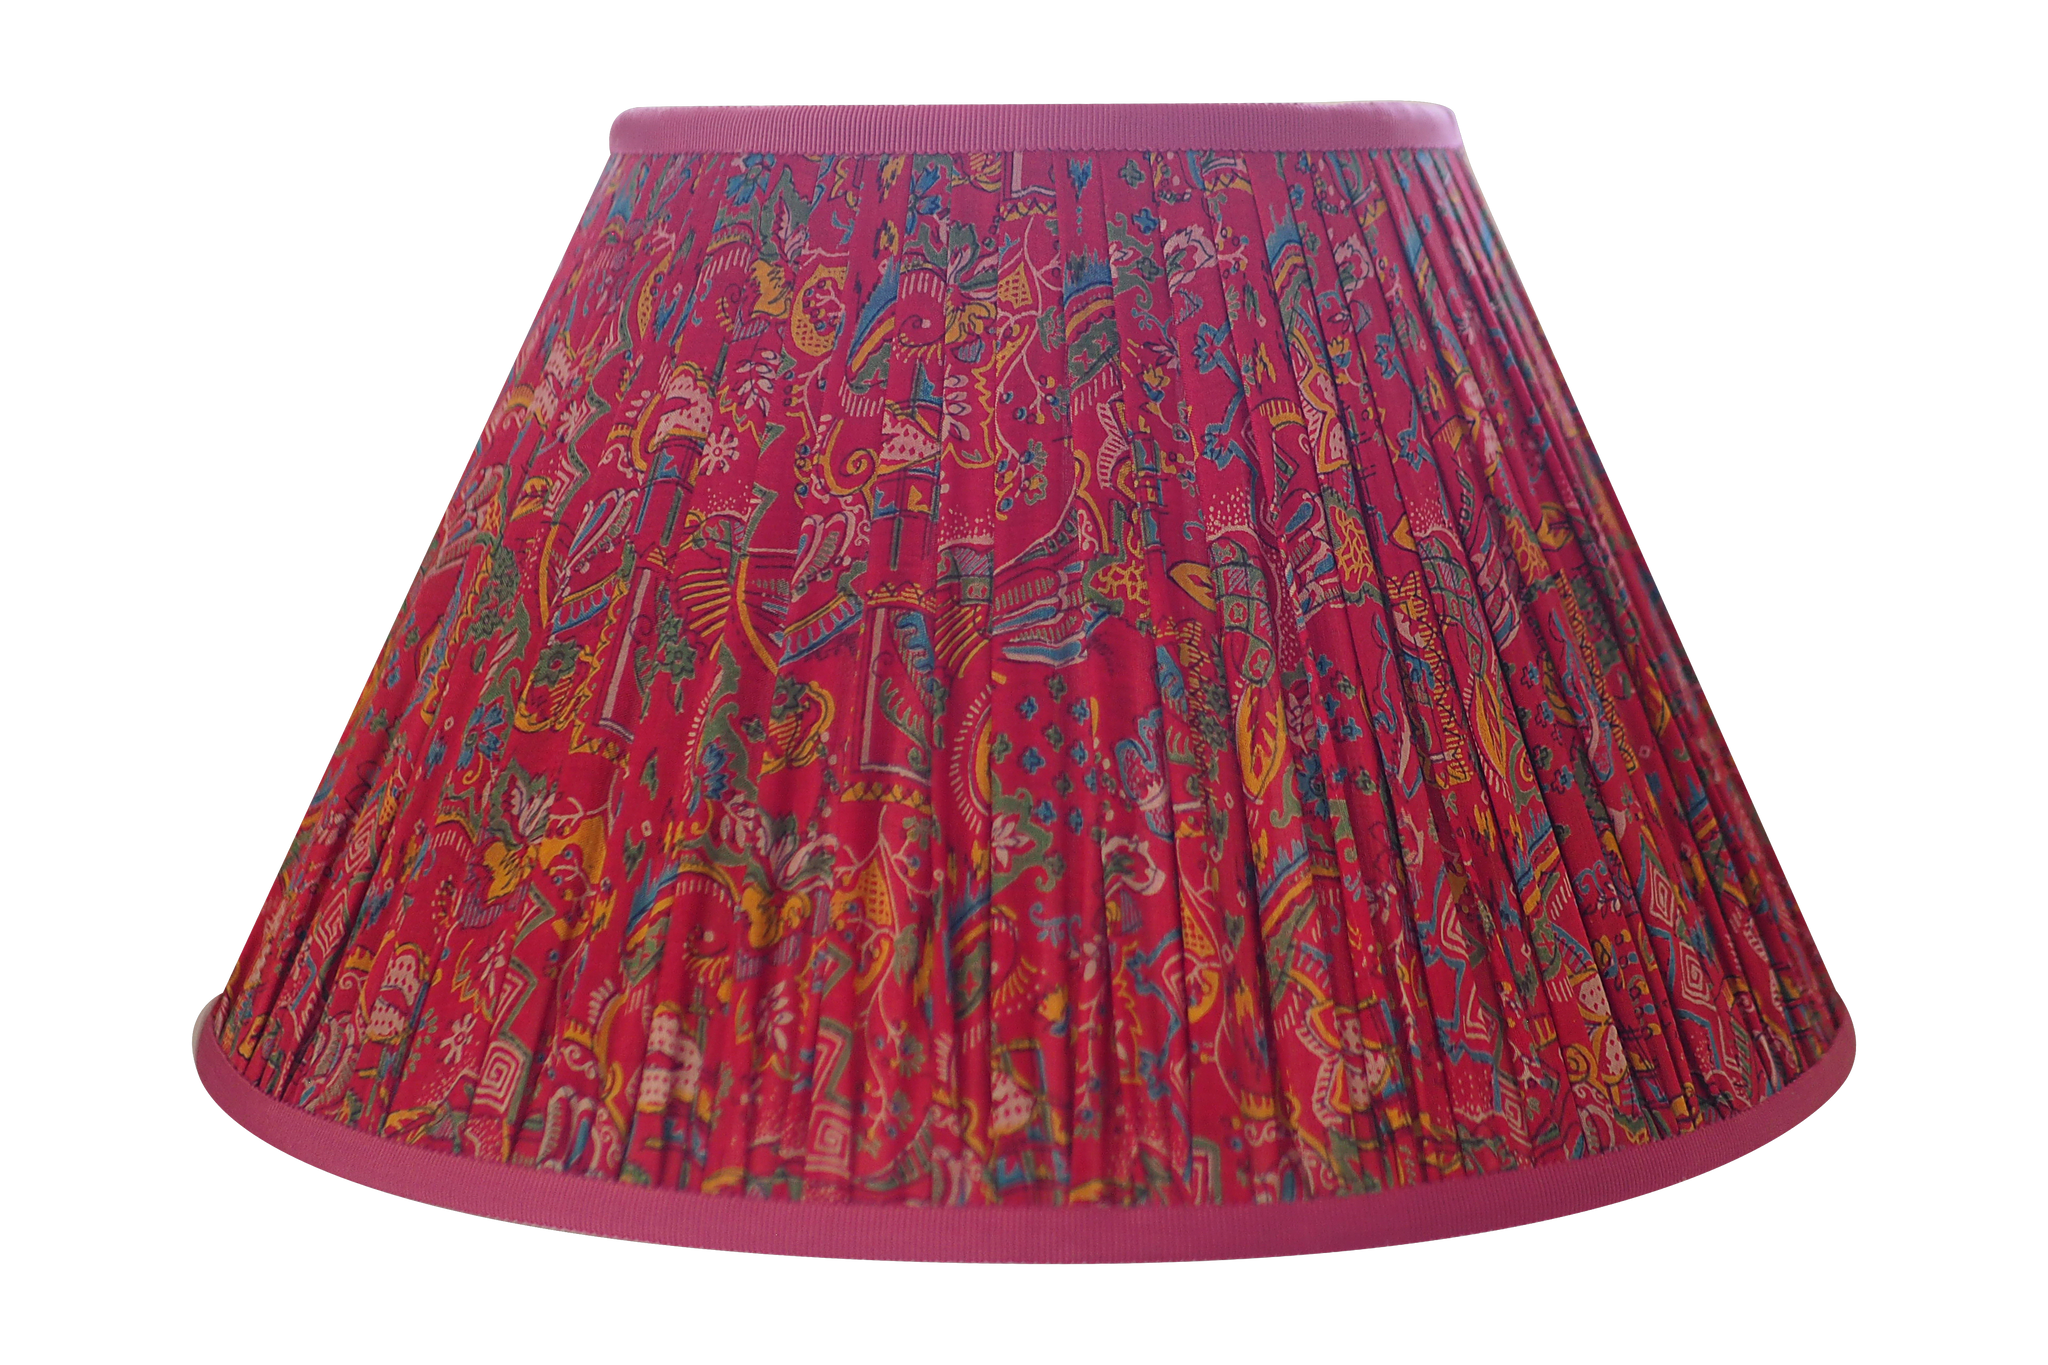 Red silk sari lamp shade